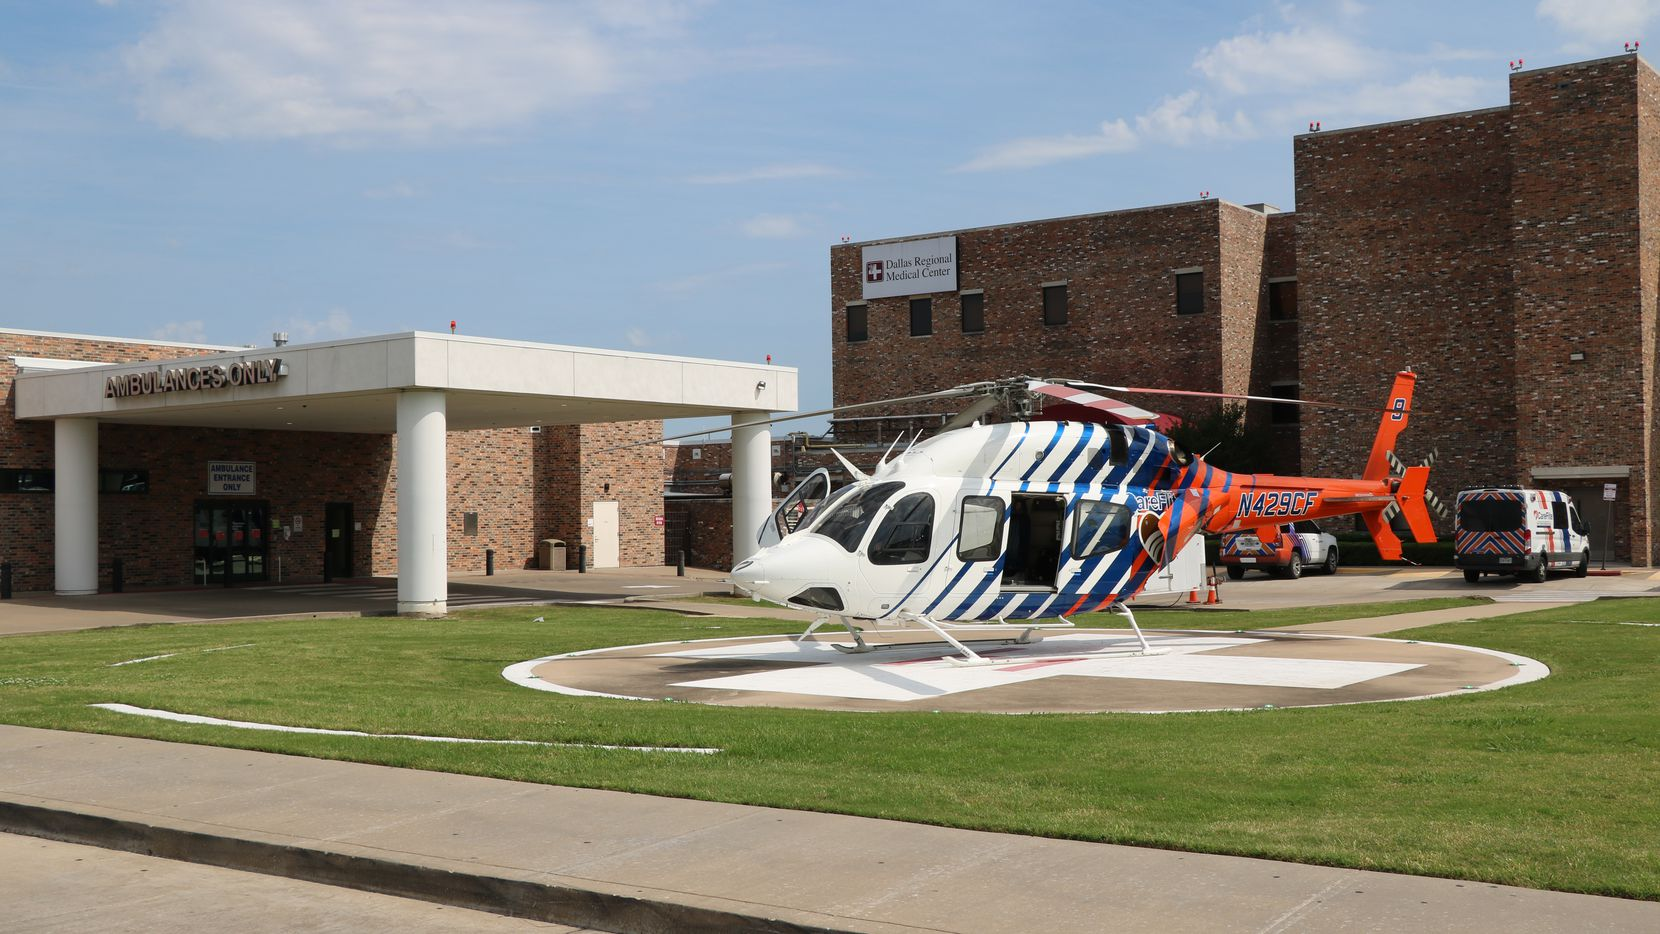 A helicopter rests on the landing pad at Dallas Regional Medical Center in Mesquite. The hospital recently was given an award by the American Heart Association for its stroke care.